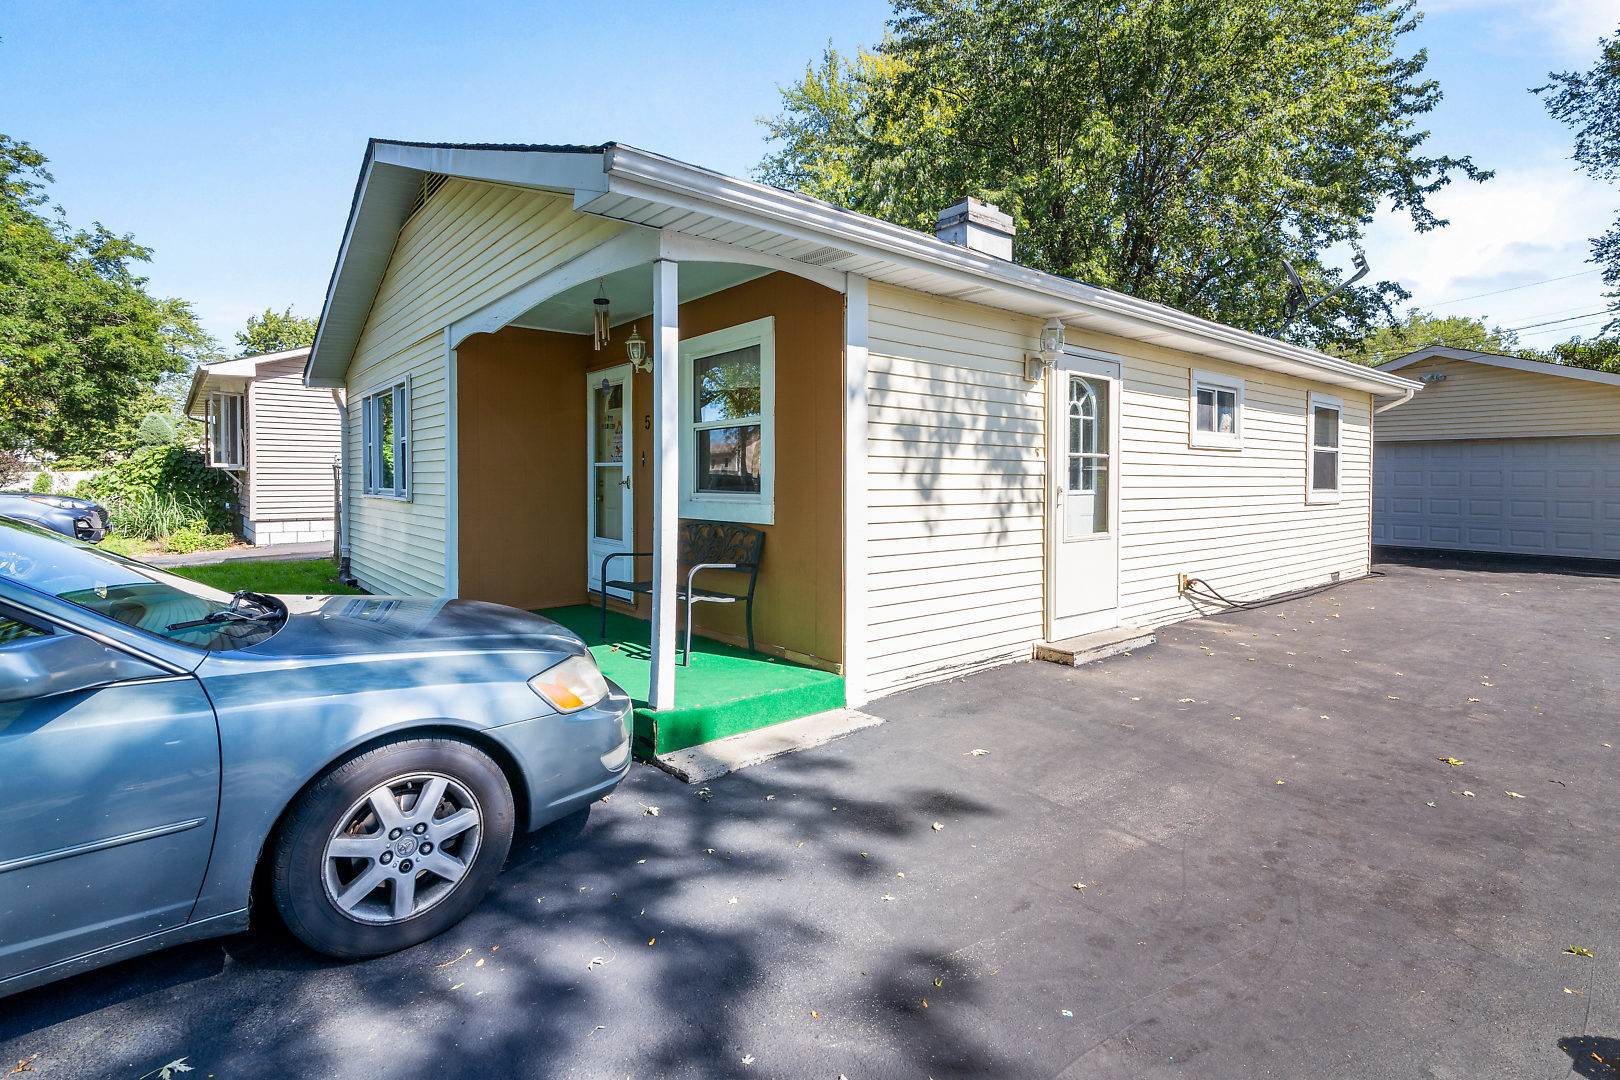 507 Lincoln ,West Chicago, Illinois 60185